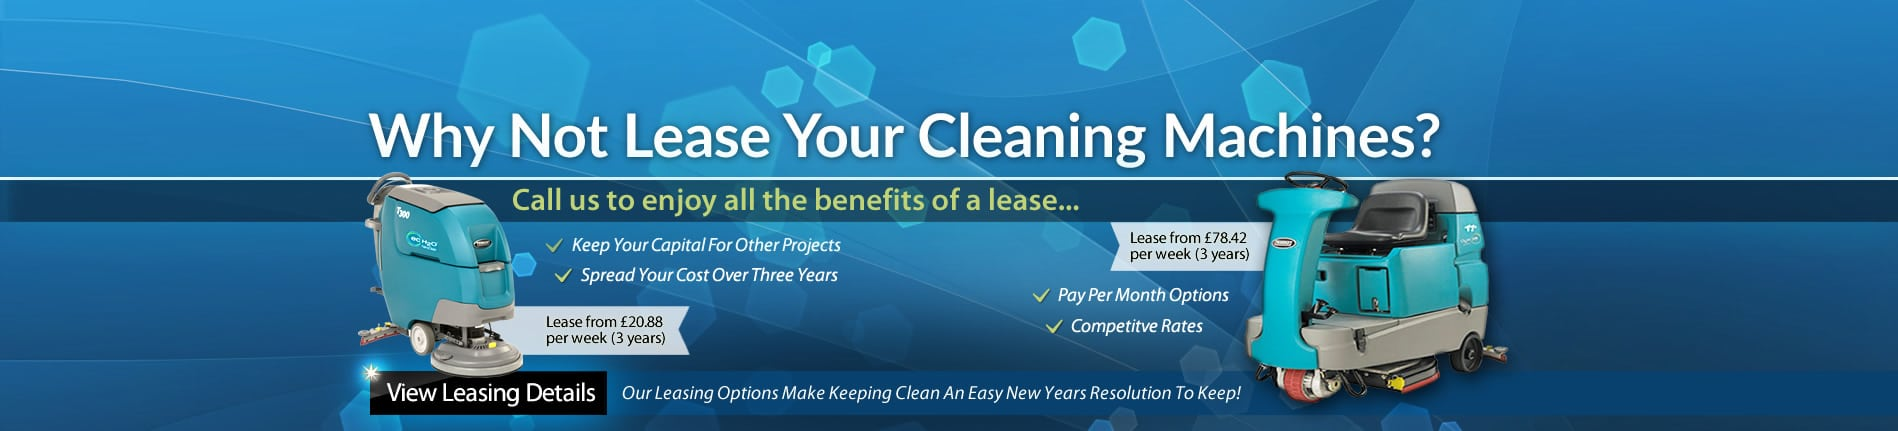 cleams-lease-banner